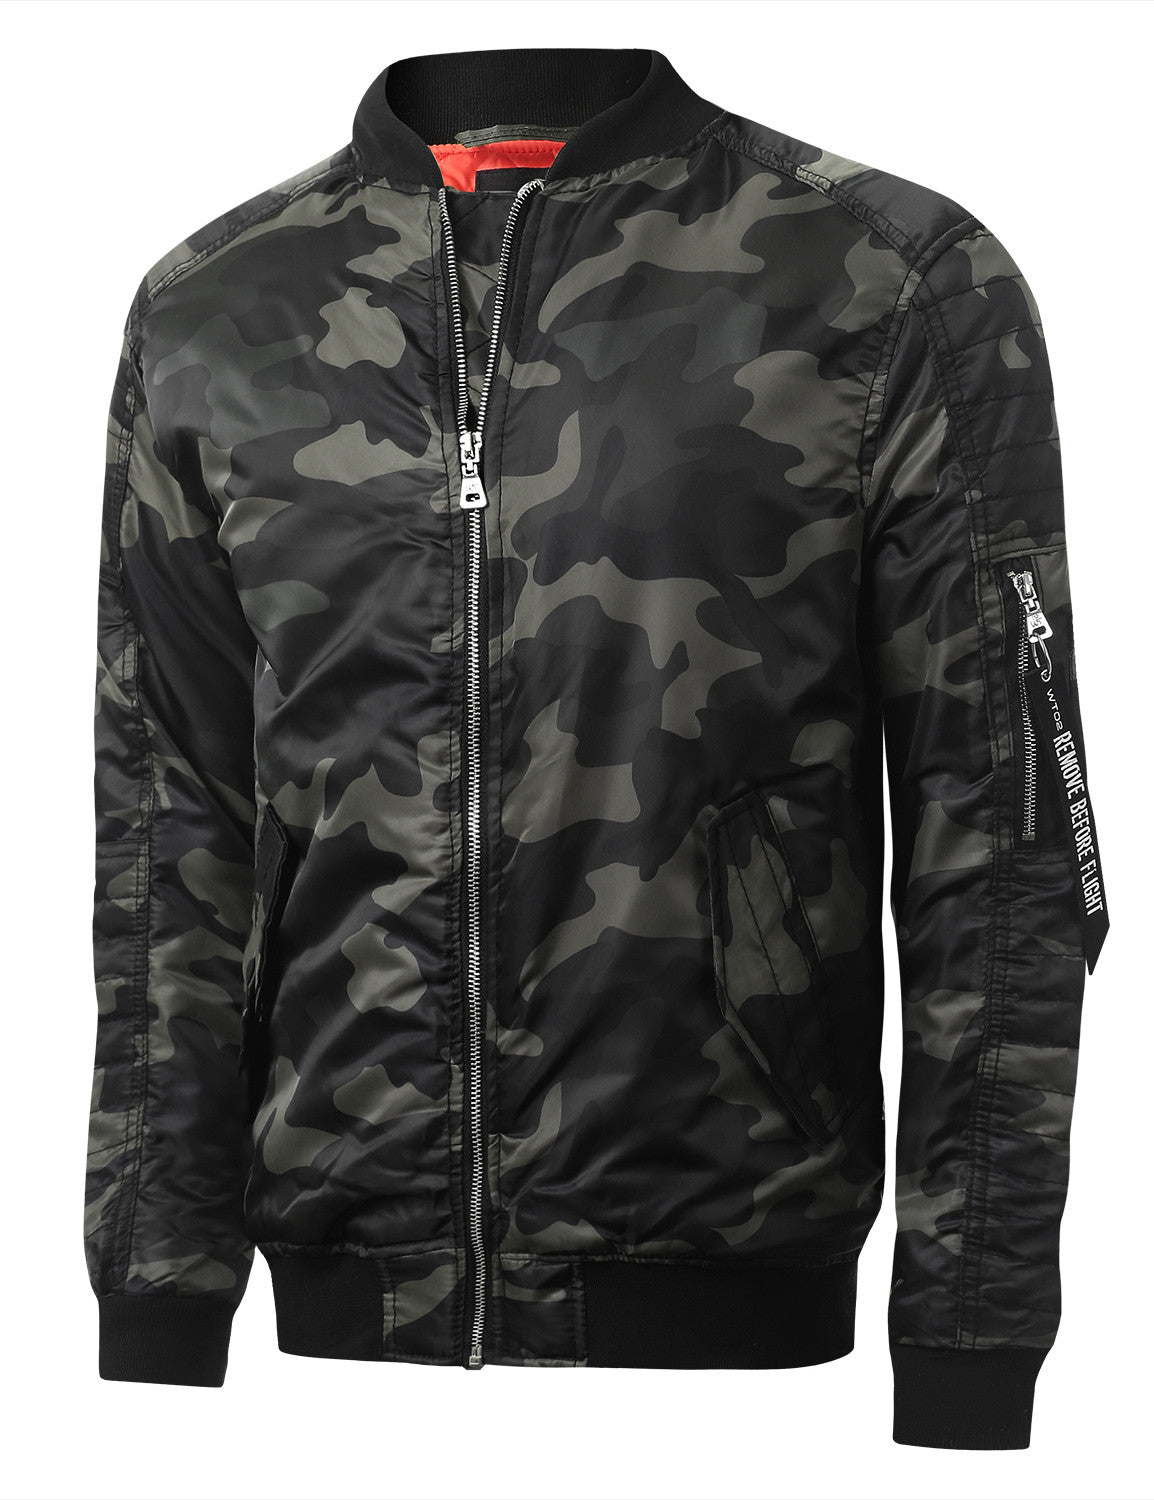 GRAYBLACK Camo Bomber Flight Jacket - URBANCREWS